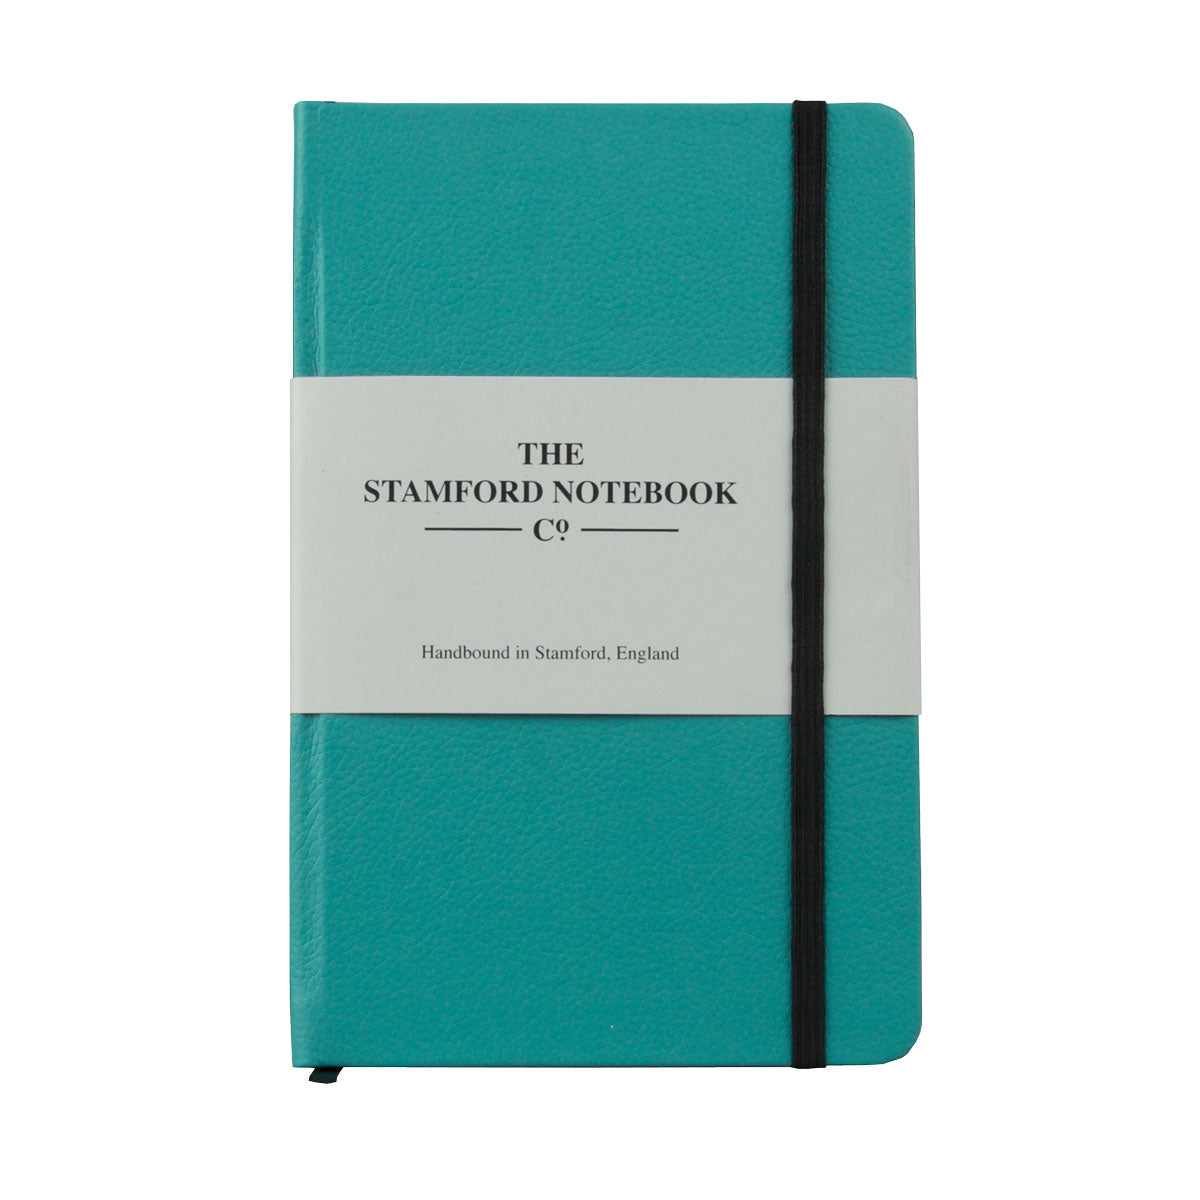 Dark Teal Luxury Leather handbound notebook